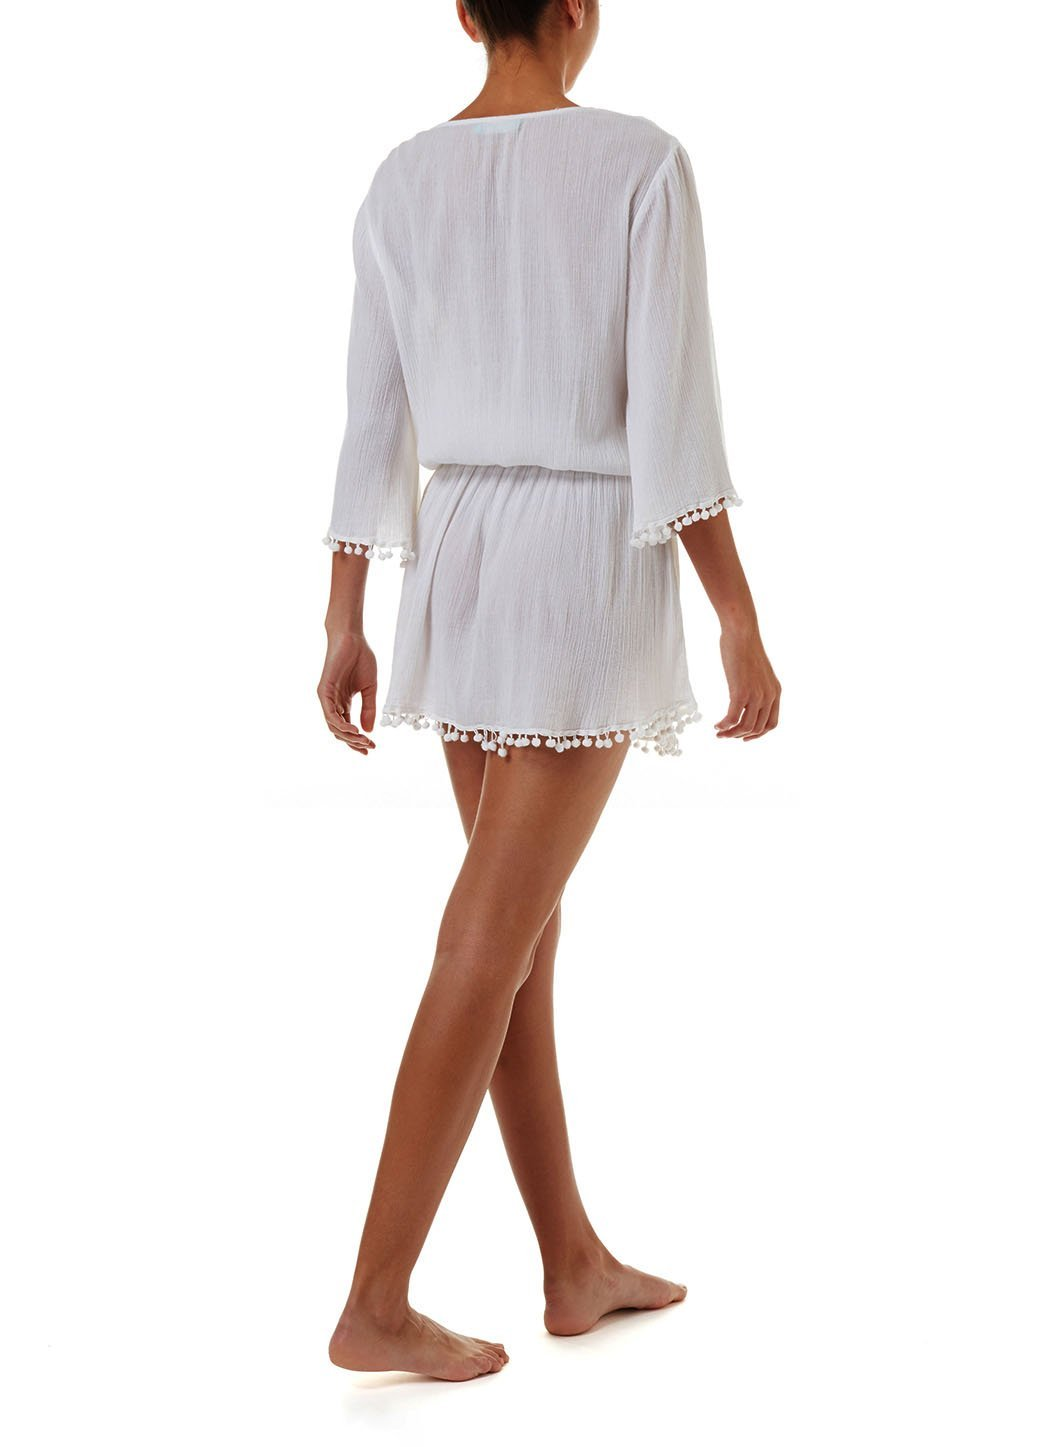 kiah white laceup embroidered short dress 2019 B